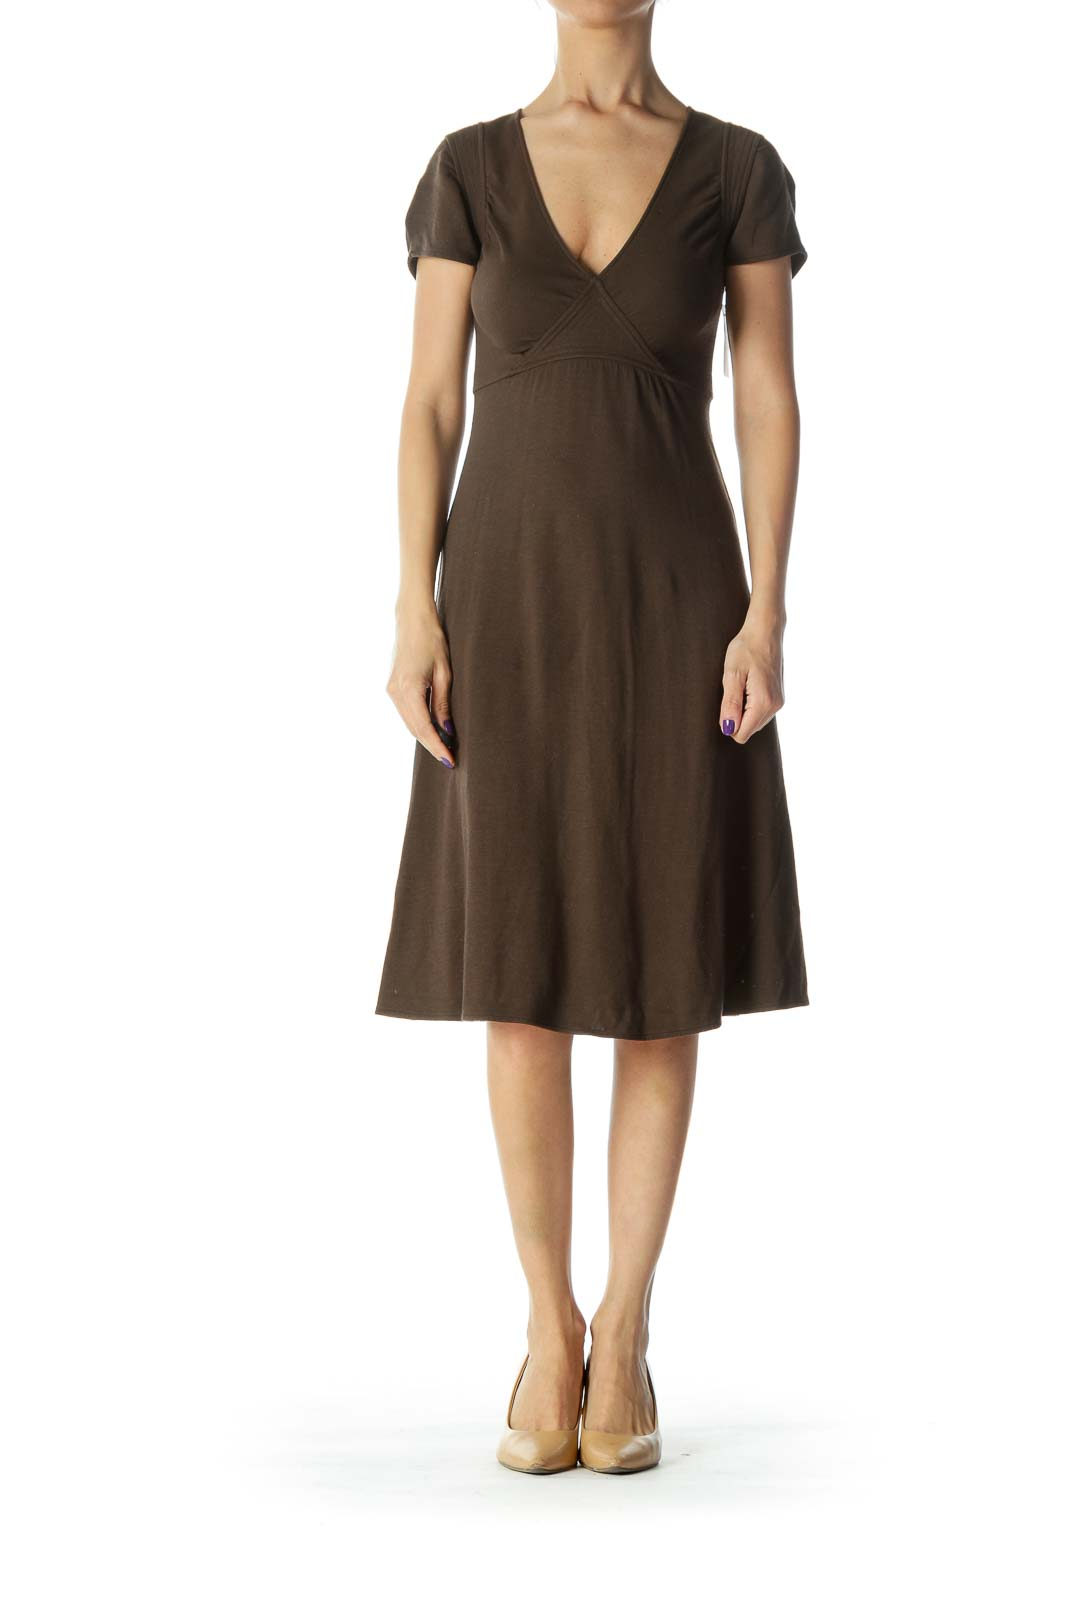 Brown Vneck Detail Dress